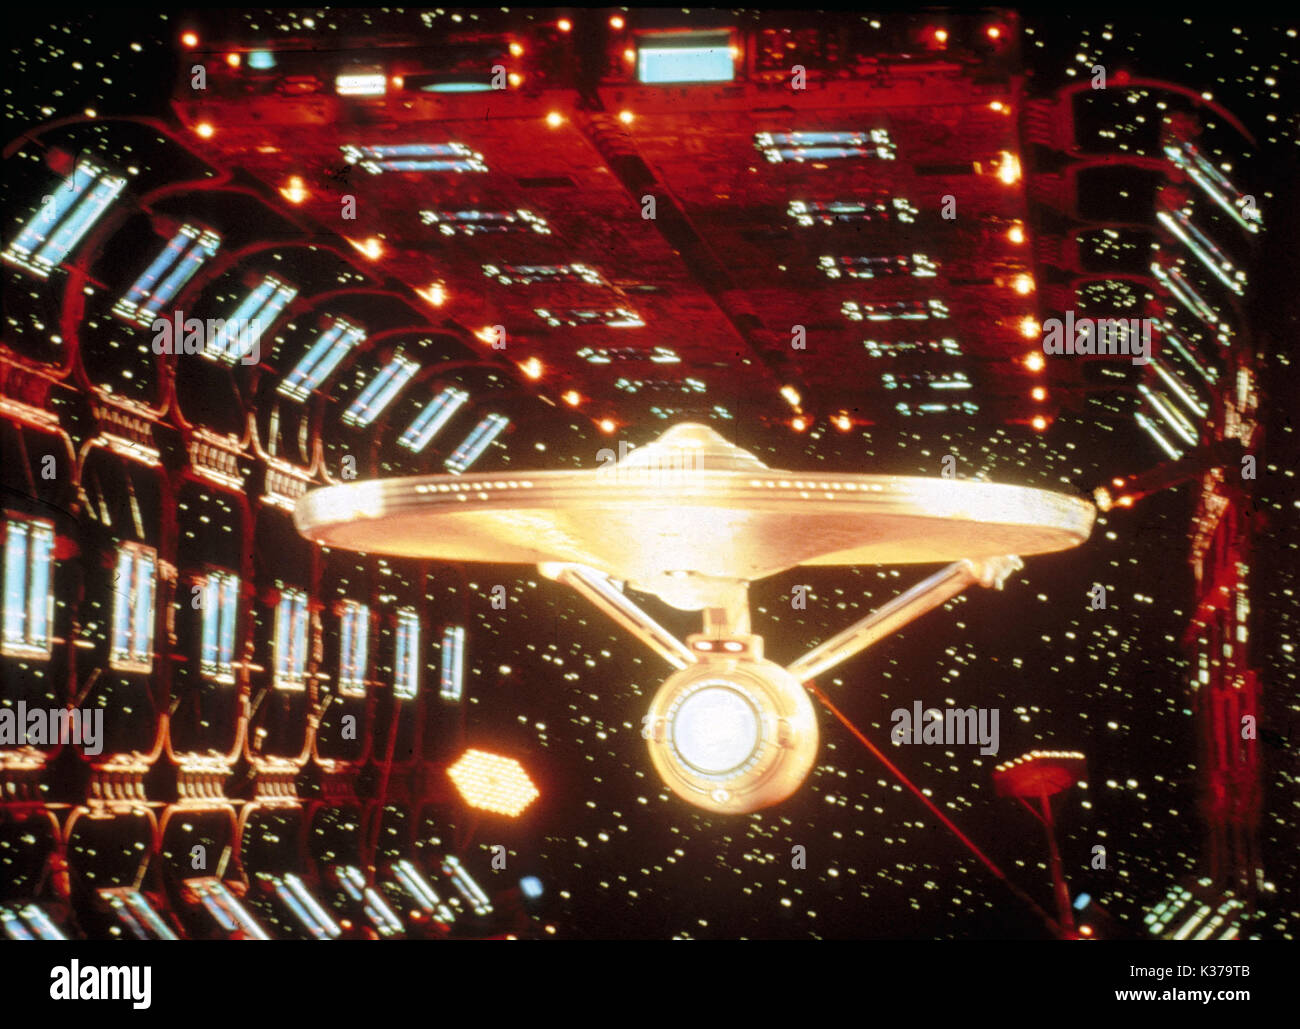 STAR TREK: THE MOTION PICTURE PARAMOUNT PICTURES Starship